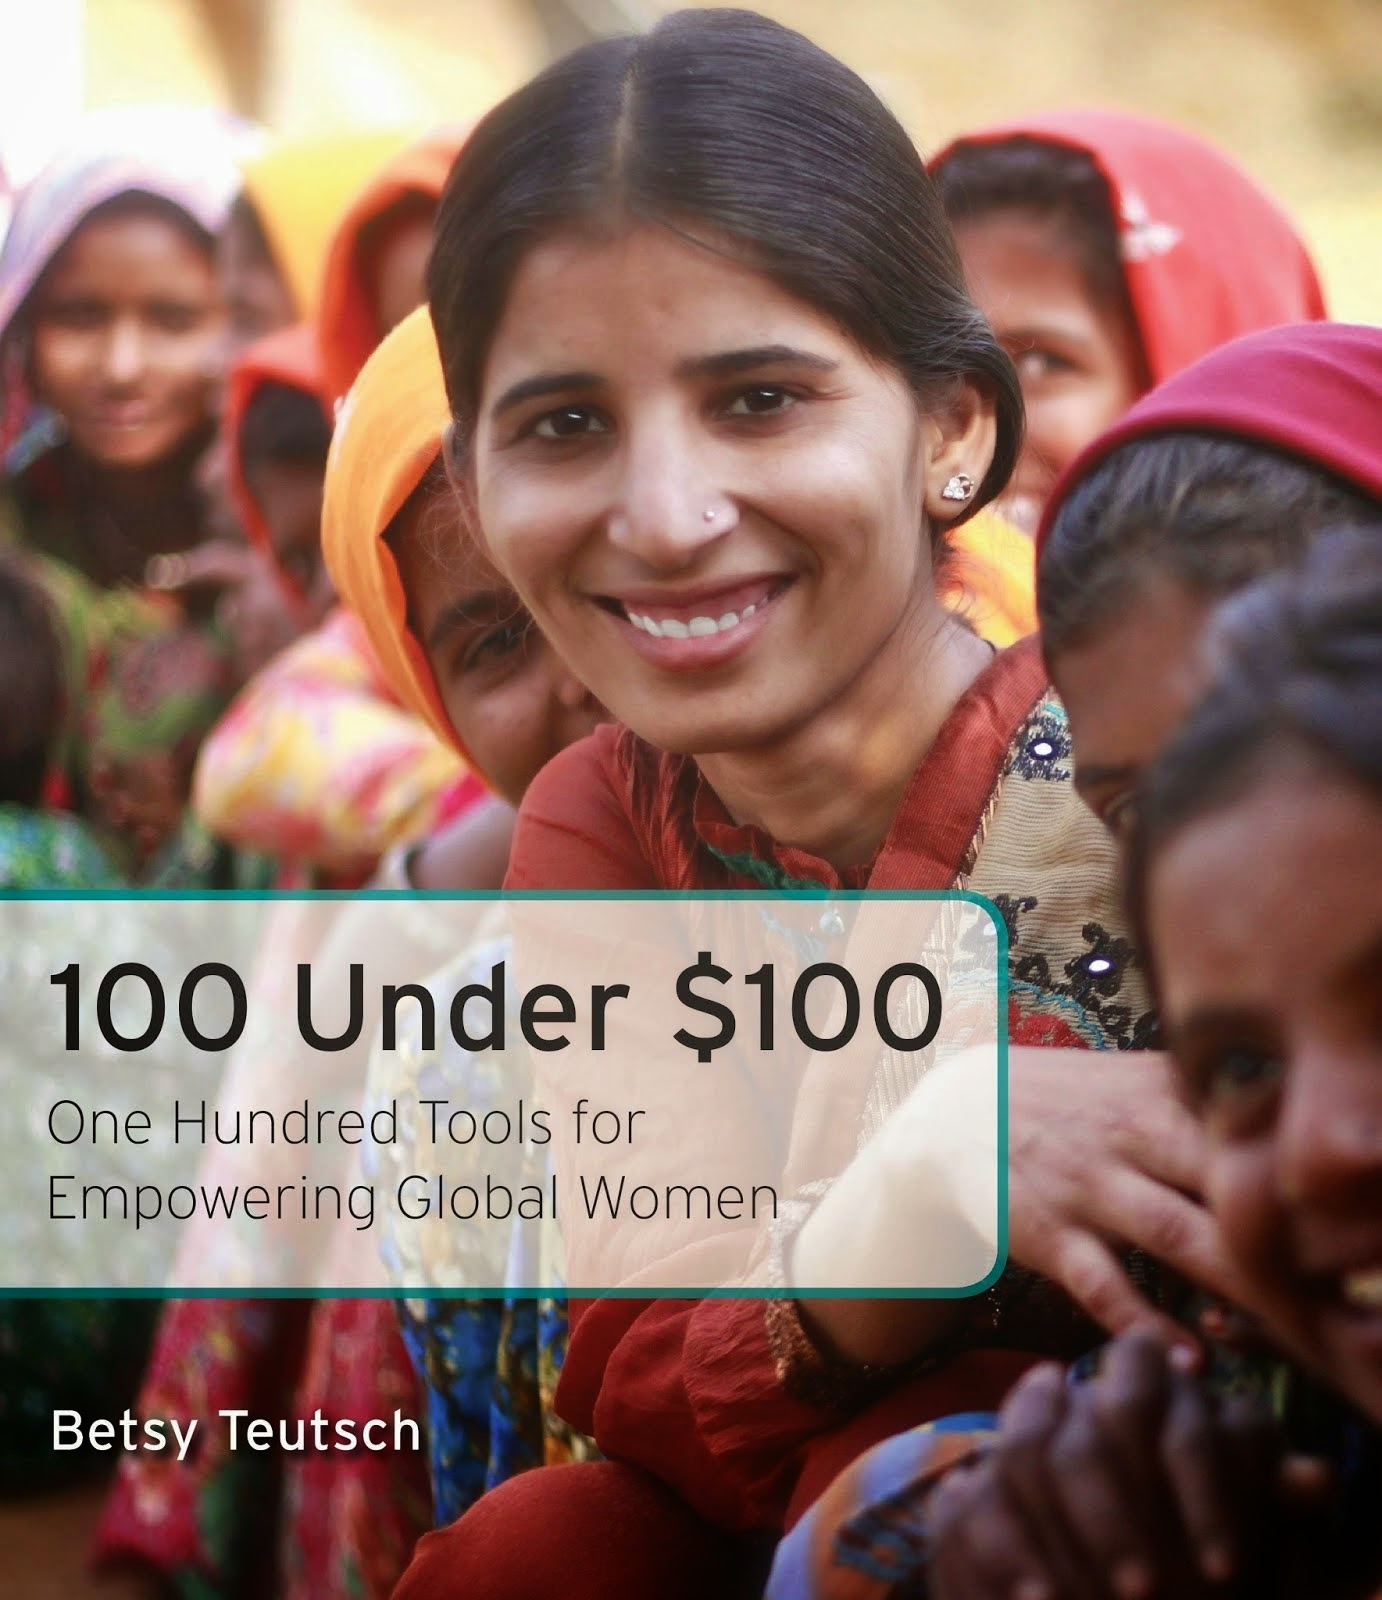 Preorder my book! www.100under100.org